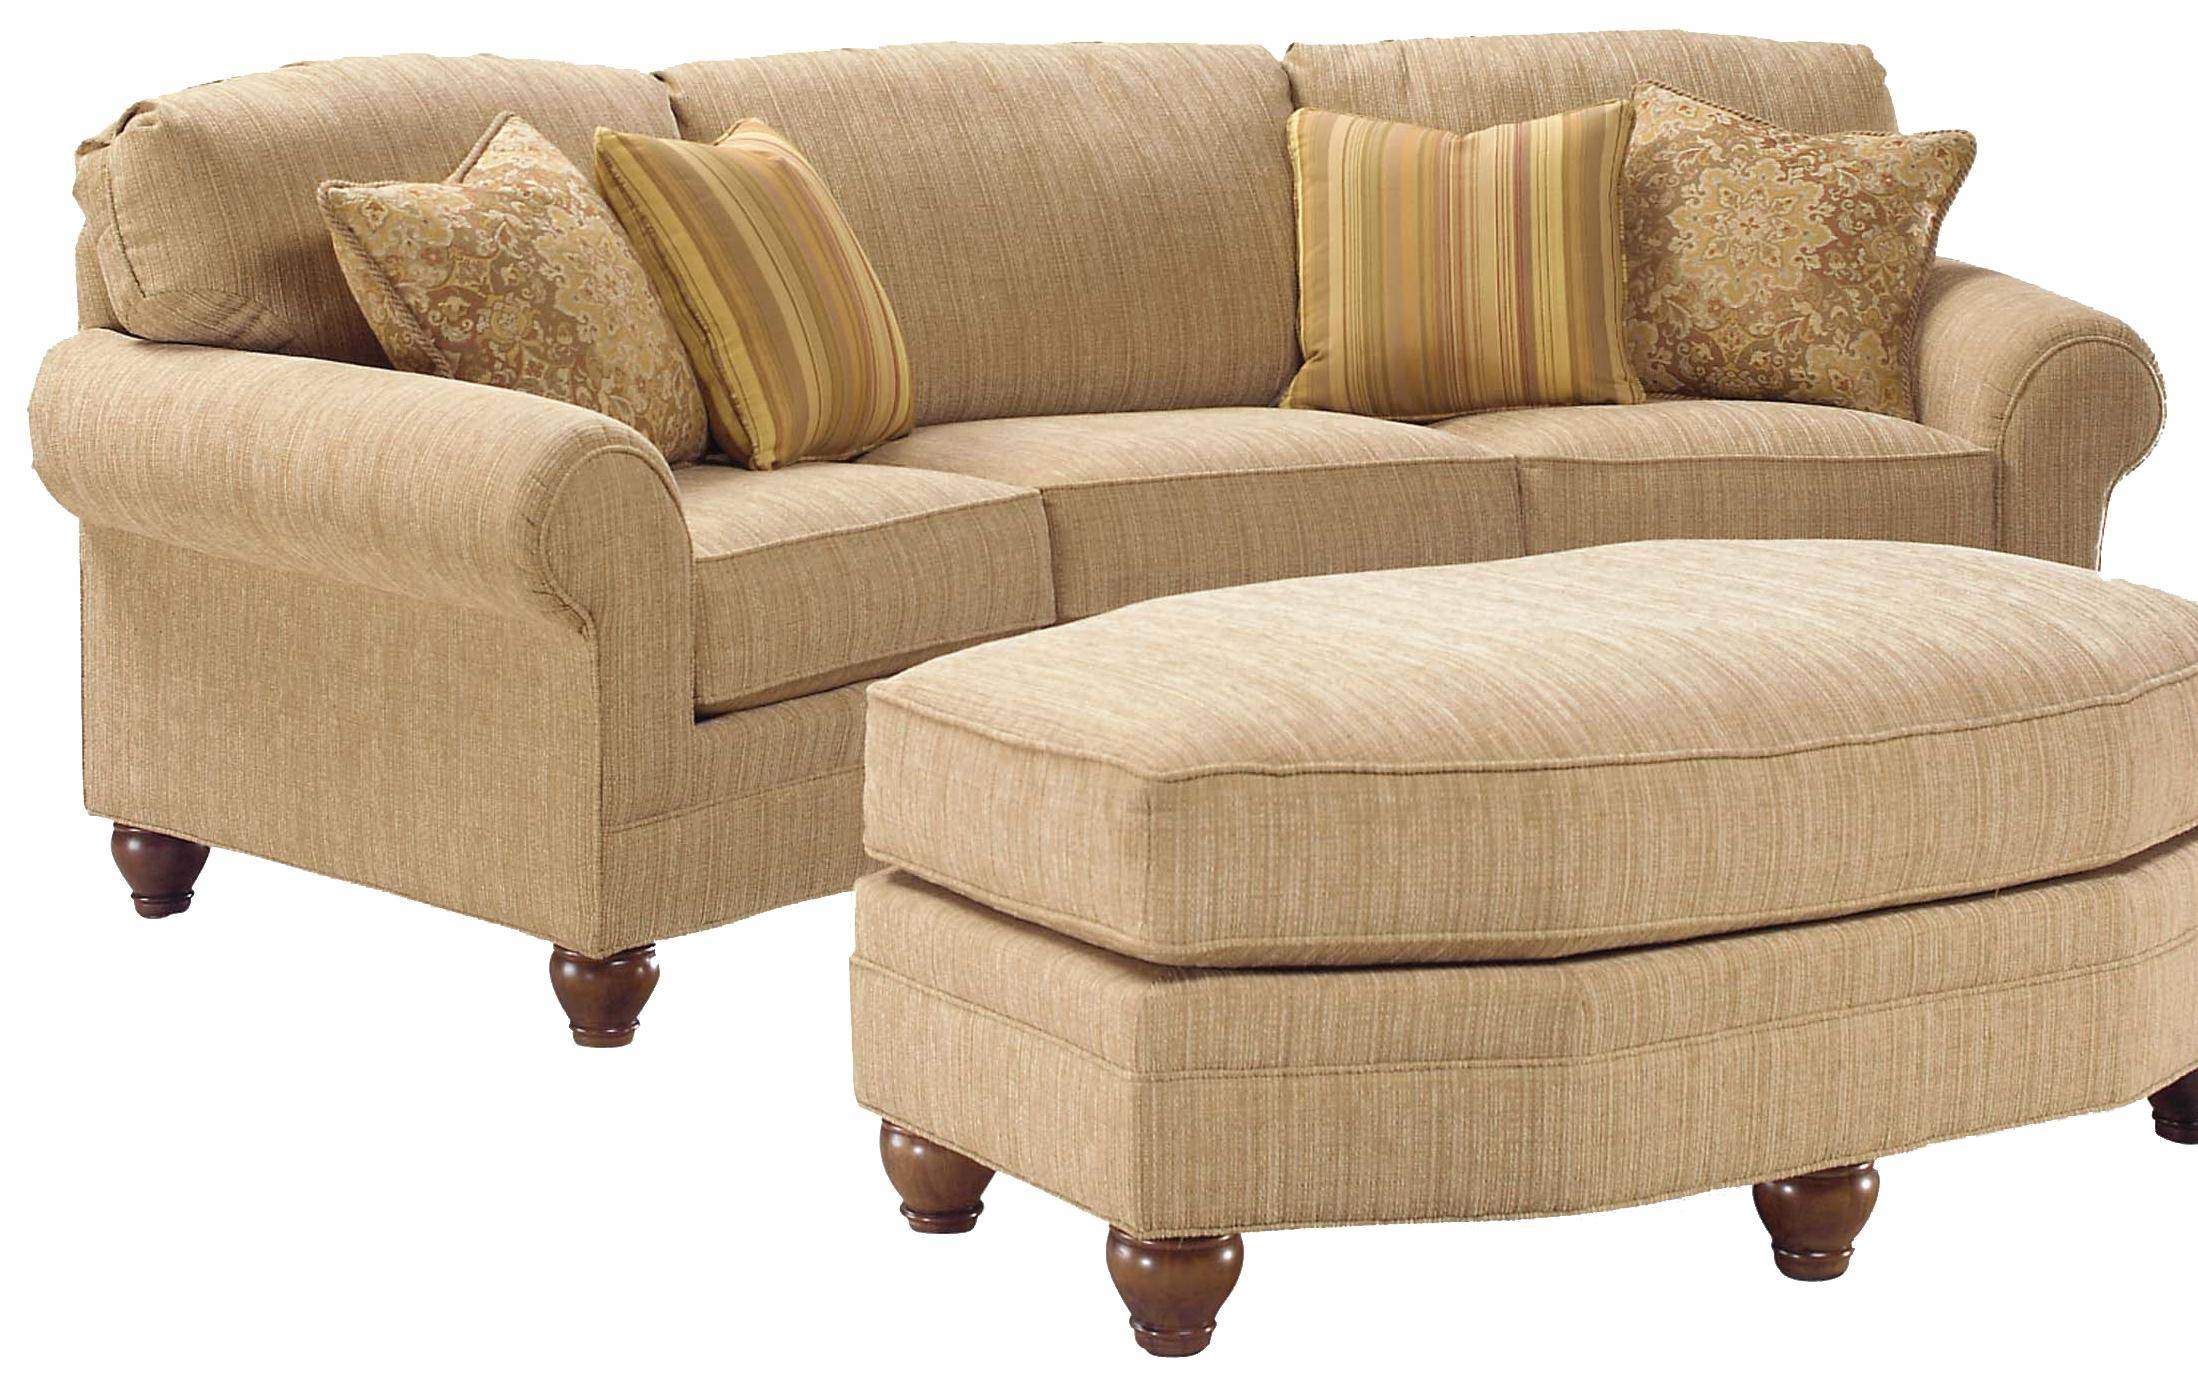 Round Sectional Couch. Red Sectional Sofa Round Brown Luxury inside Small Curved Sectional Sofas (Image 12 of 15)